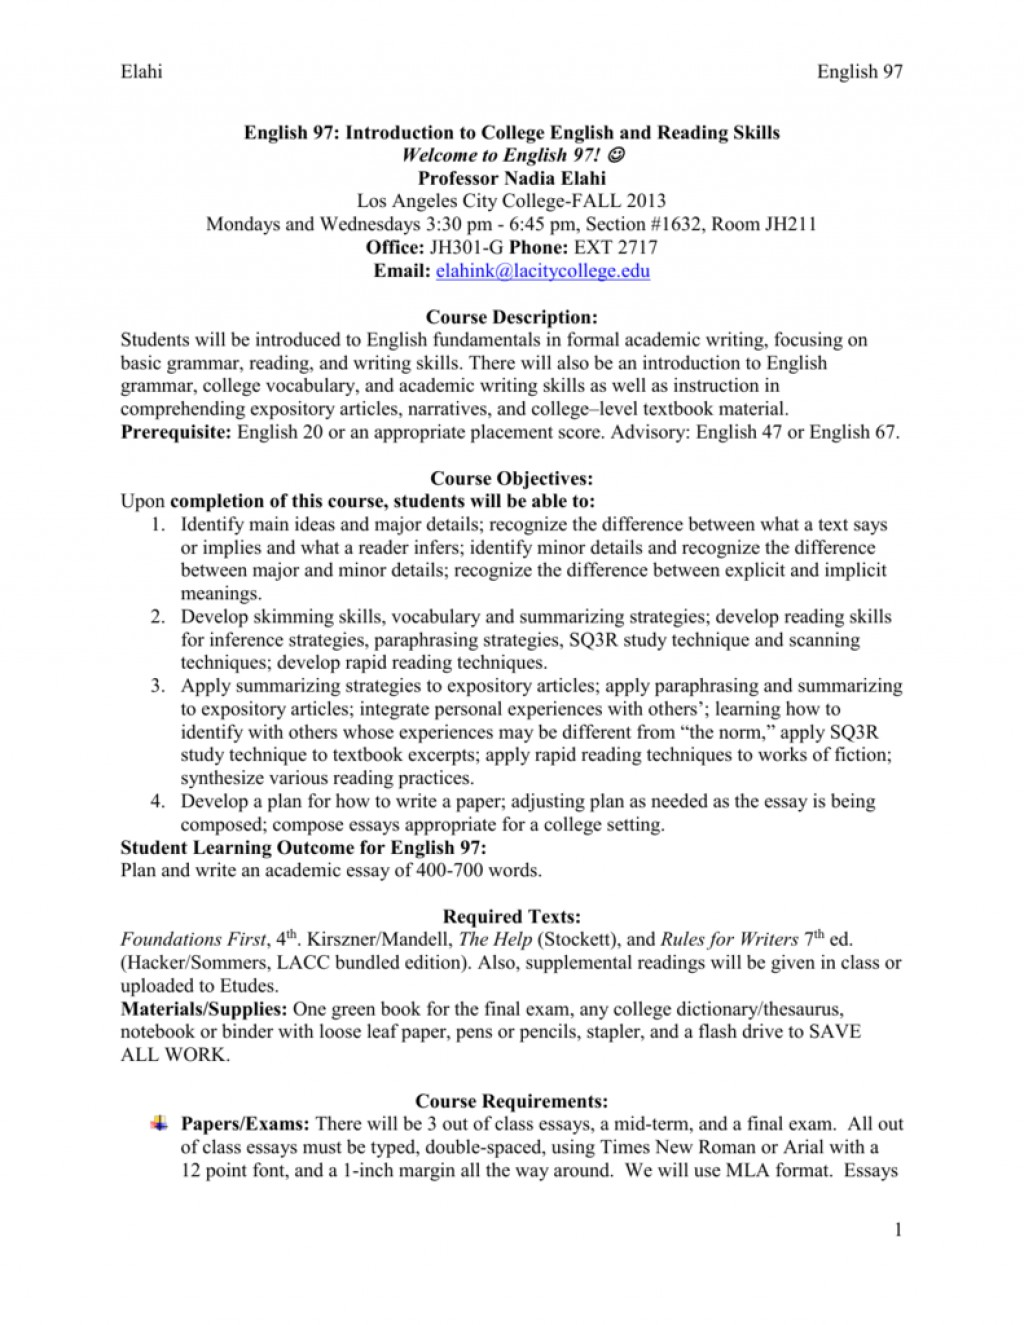 004 How To Start An Essay About Book Example Writing College Level Format Write Off Yourself 006727749 1 Introduction Application Fantastic A The Theme Of Comparing Two Books Analytical Large